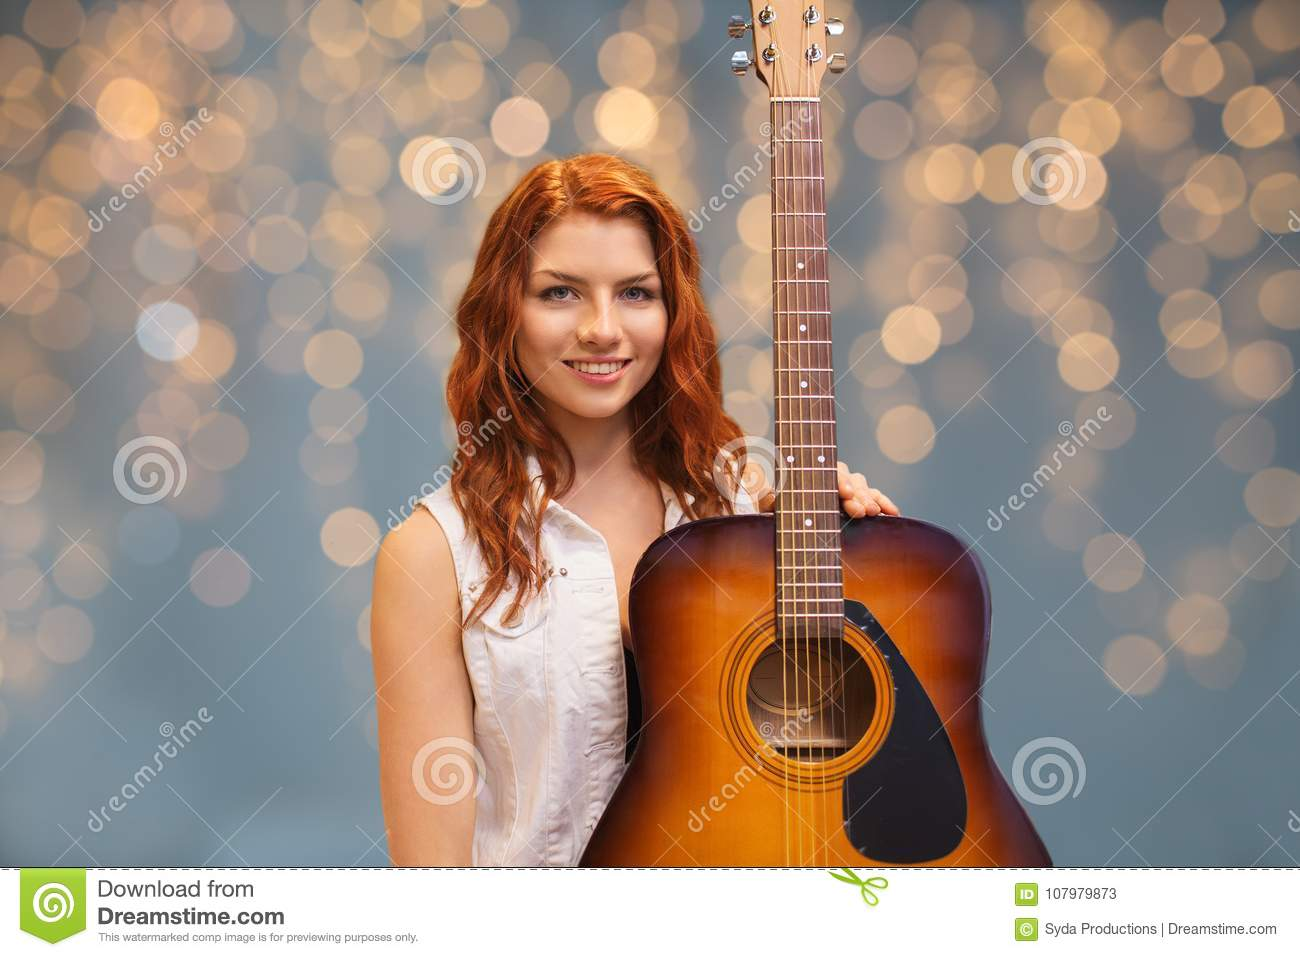 Female Musician With Guitar Over Lights Background Stock Image